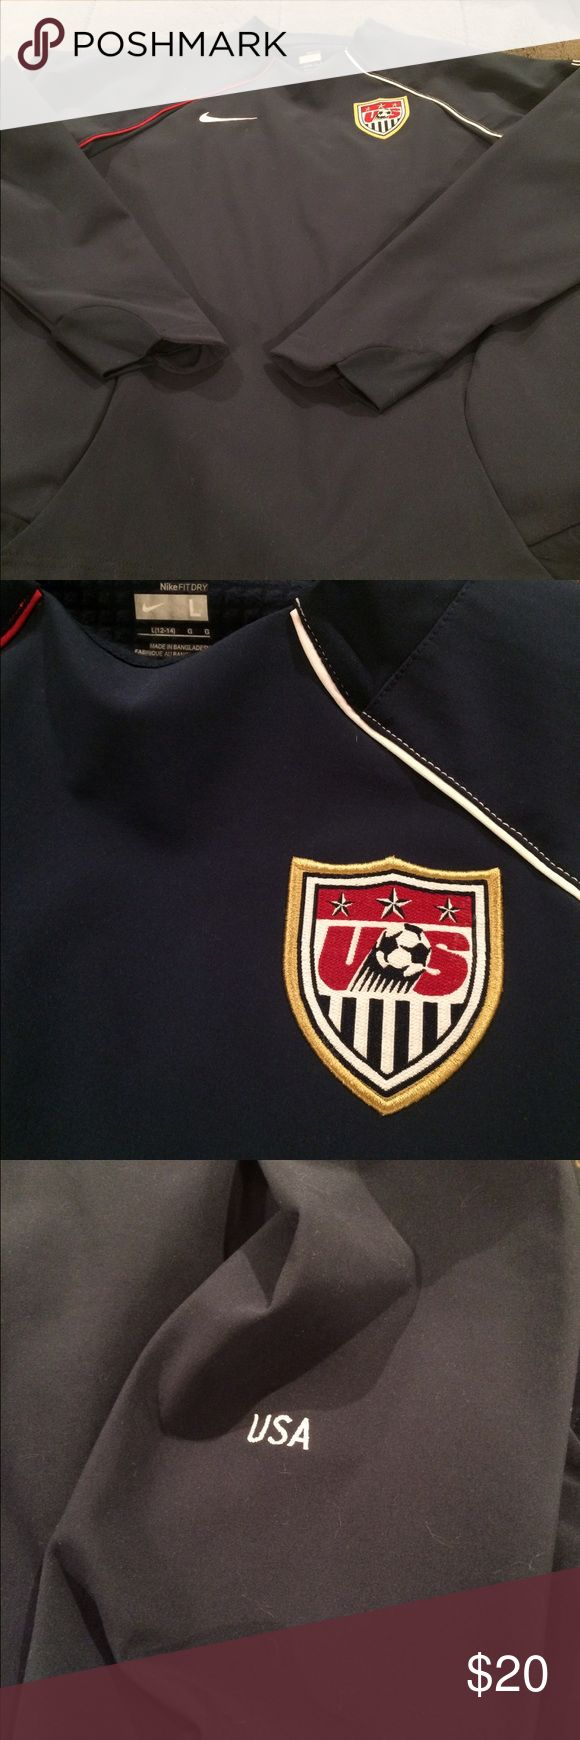 Nike Women's USA Soccer Pullover Jacket L Fabulous Nike jacket for women. USA soccer patch on the front. Navy blue color. In perfect condition. Not sure I ever ended up wearing this. Size Large. Nike Jackets & Coats